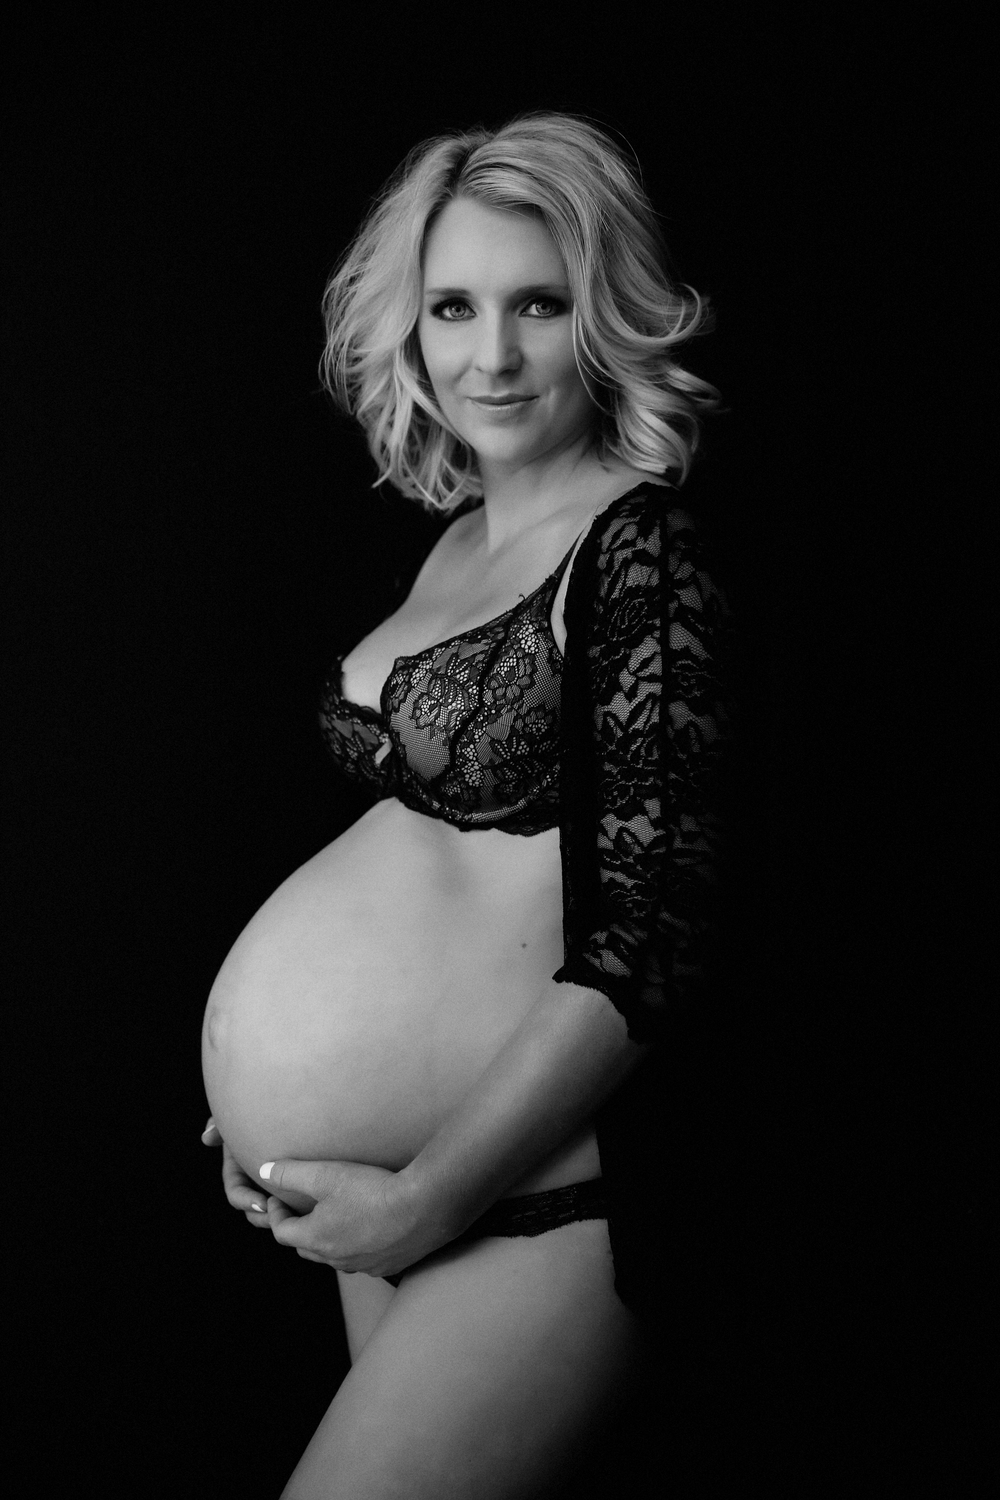 Sydney maternity portraits, pregnancy photography